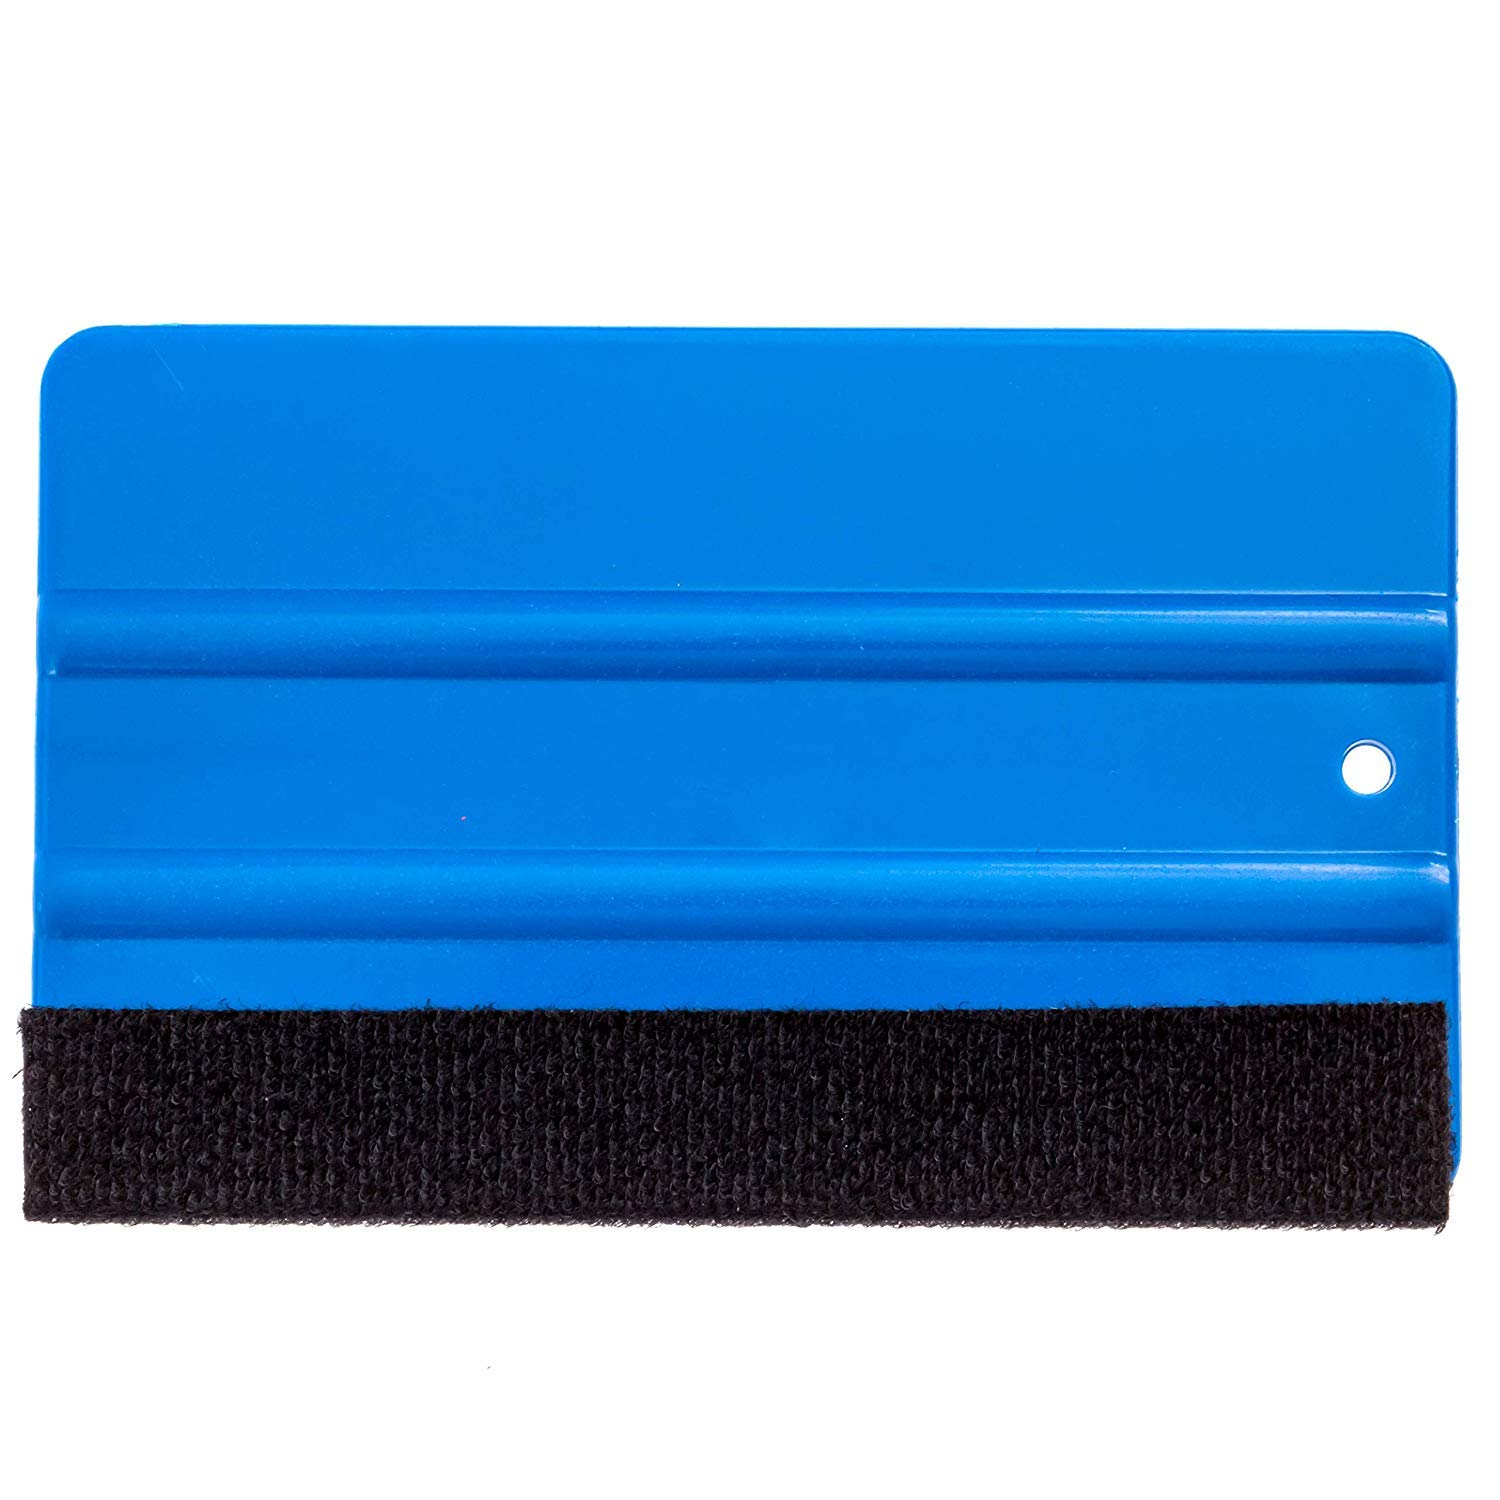 Larger Size for Greater Surface Area and Leverage Felt Edge to Prevent Scratches Gold Label Detailing Vinyl Wrap Large Felt Tipped Squeegee